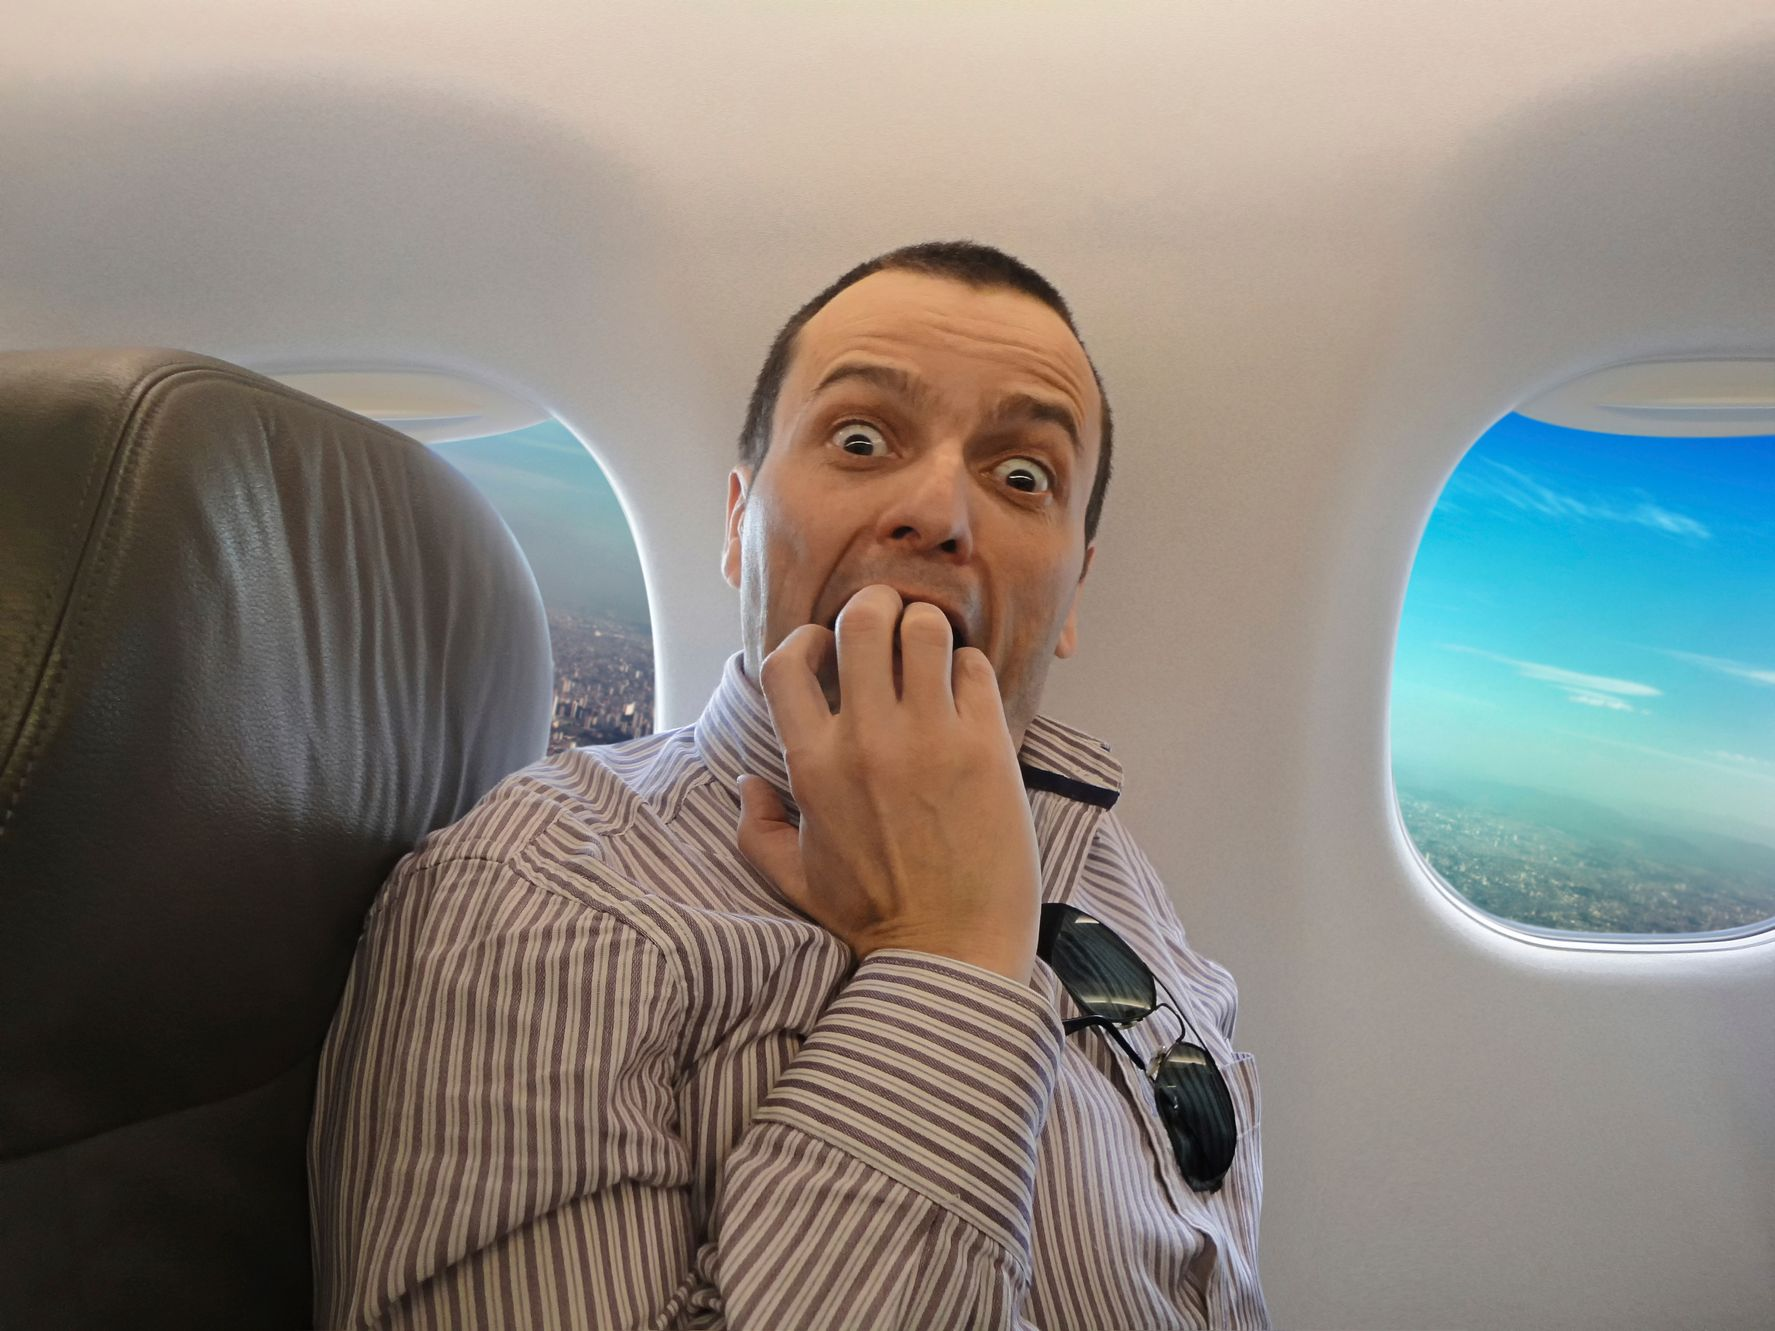 Man scared on a plane